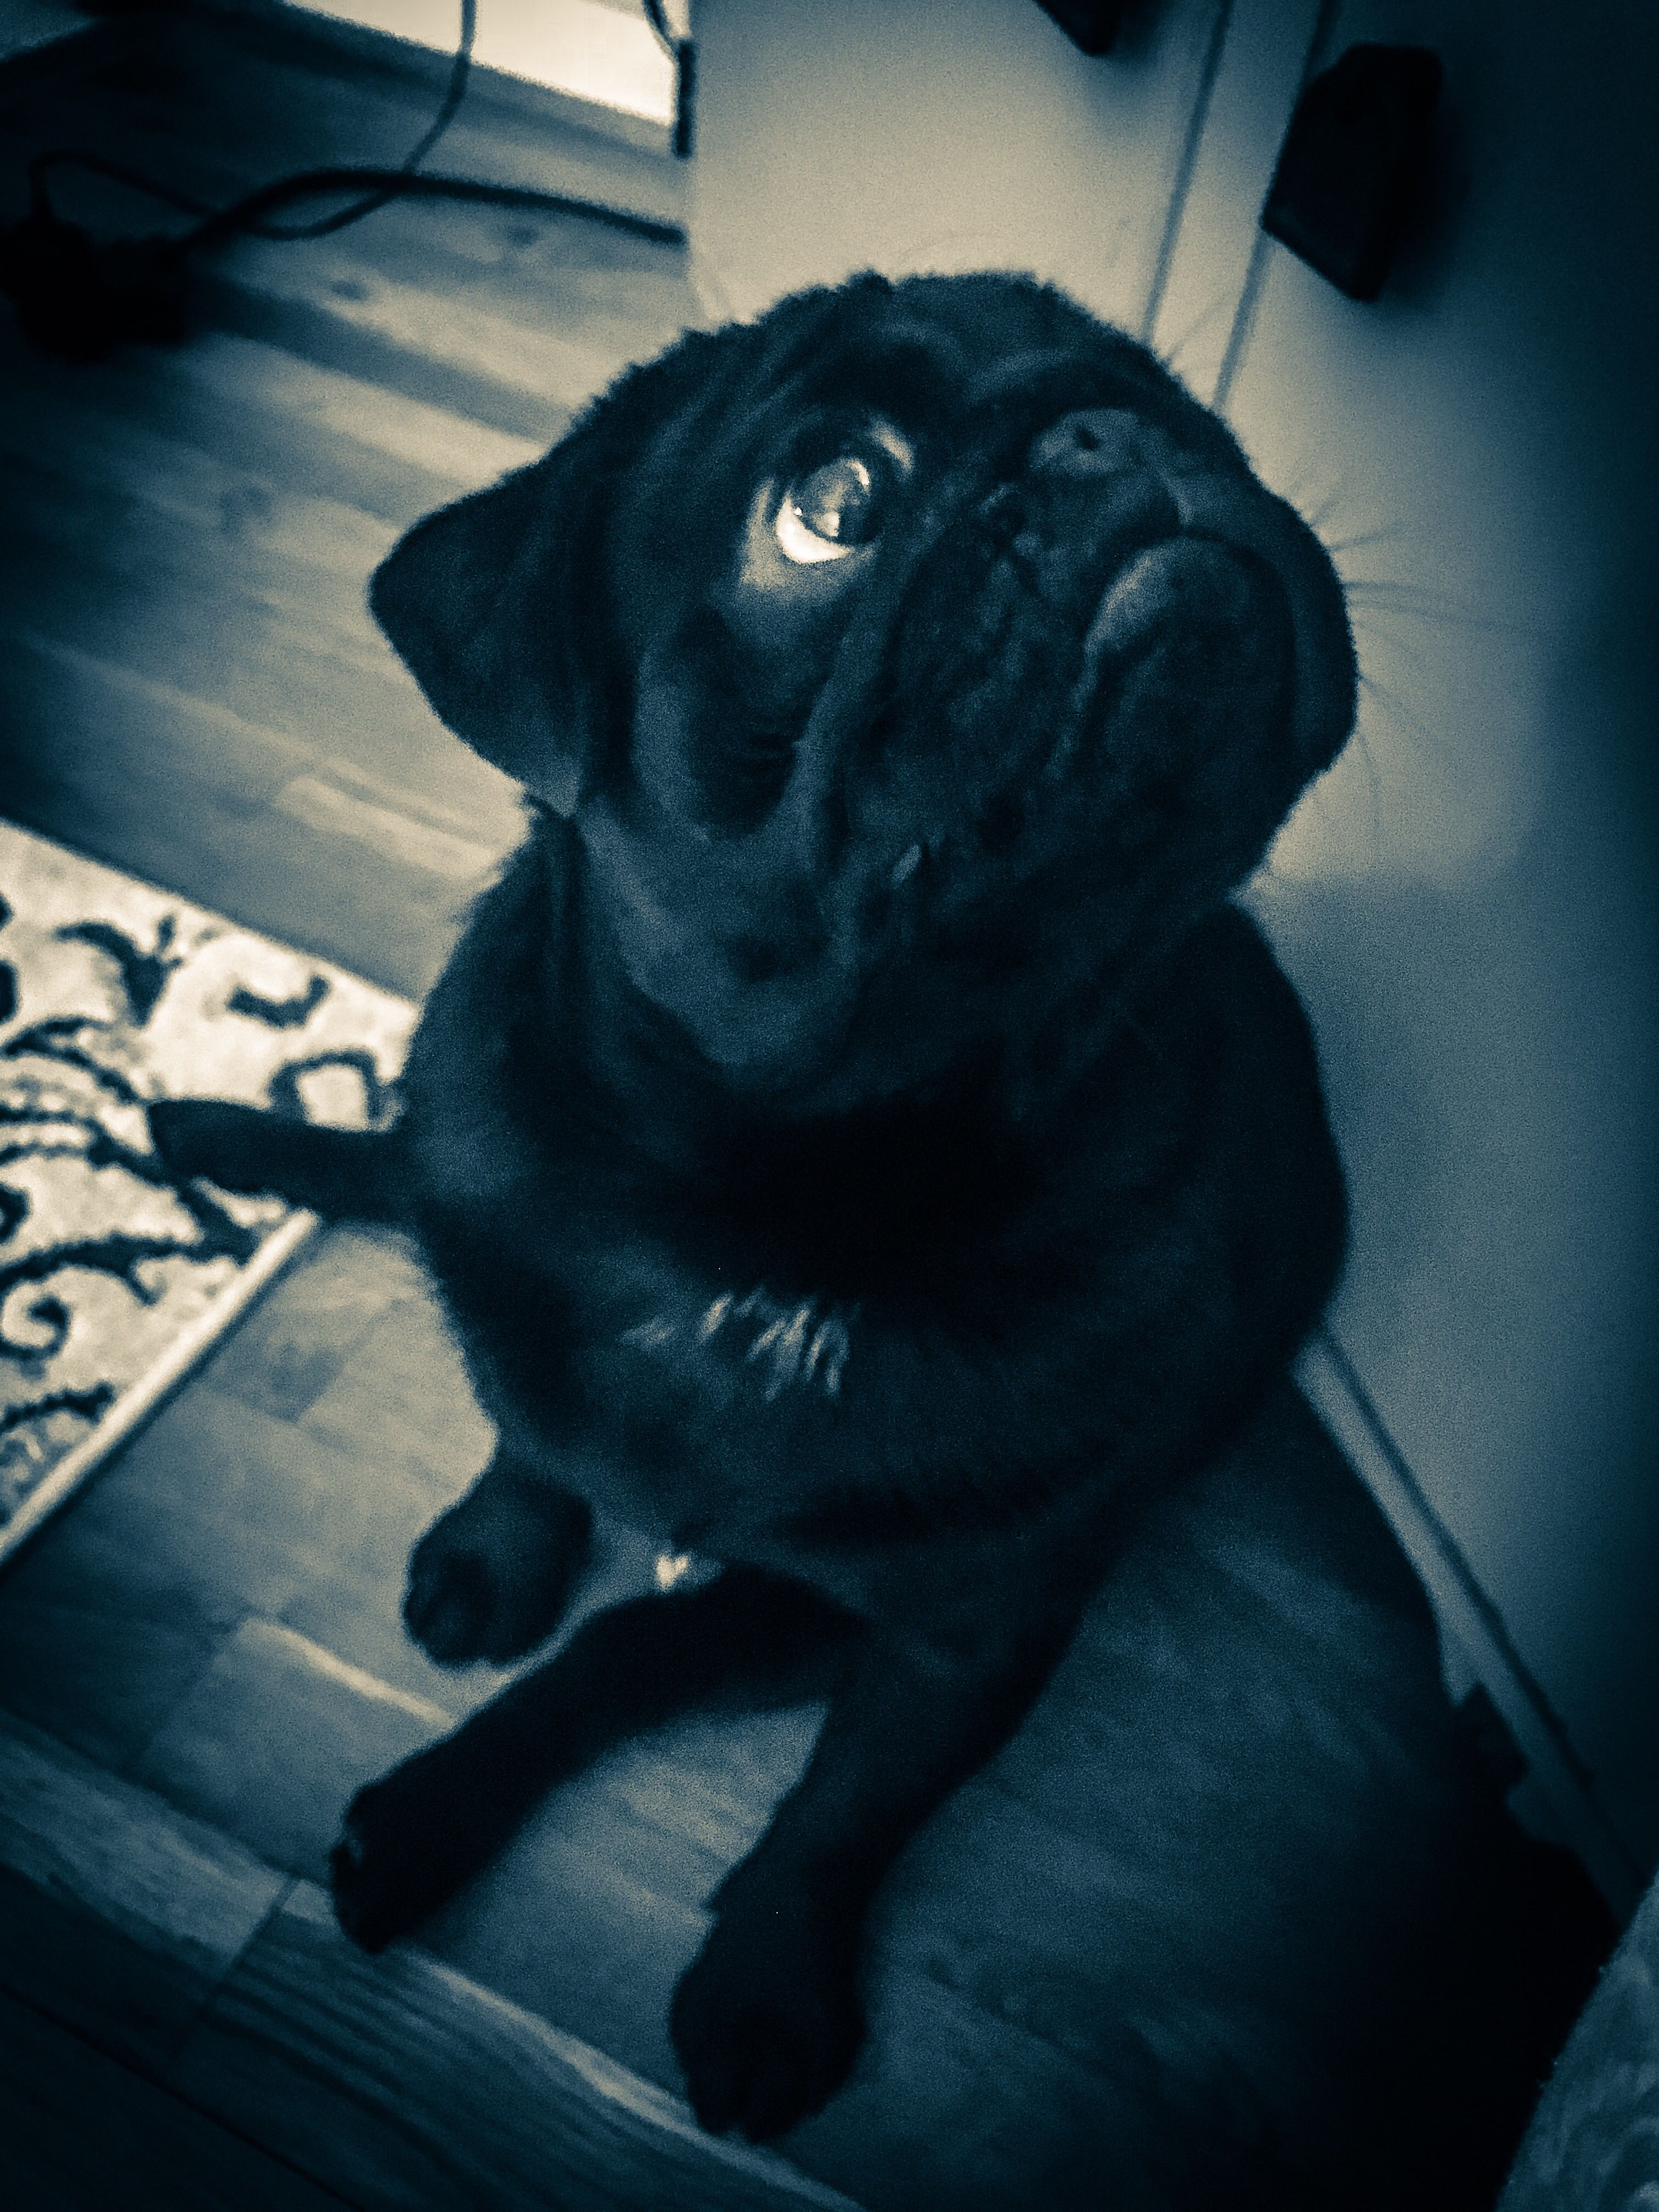 Pin By Janelle Macintosh On Pug Galore With Images Pugs Black